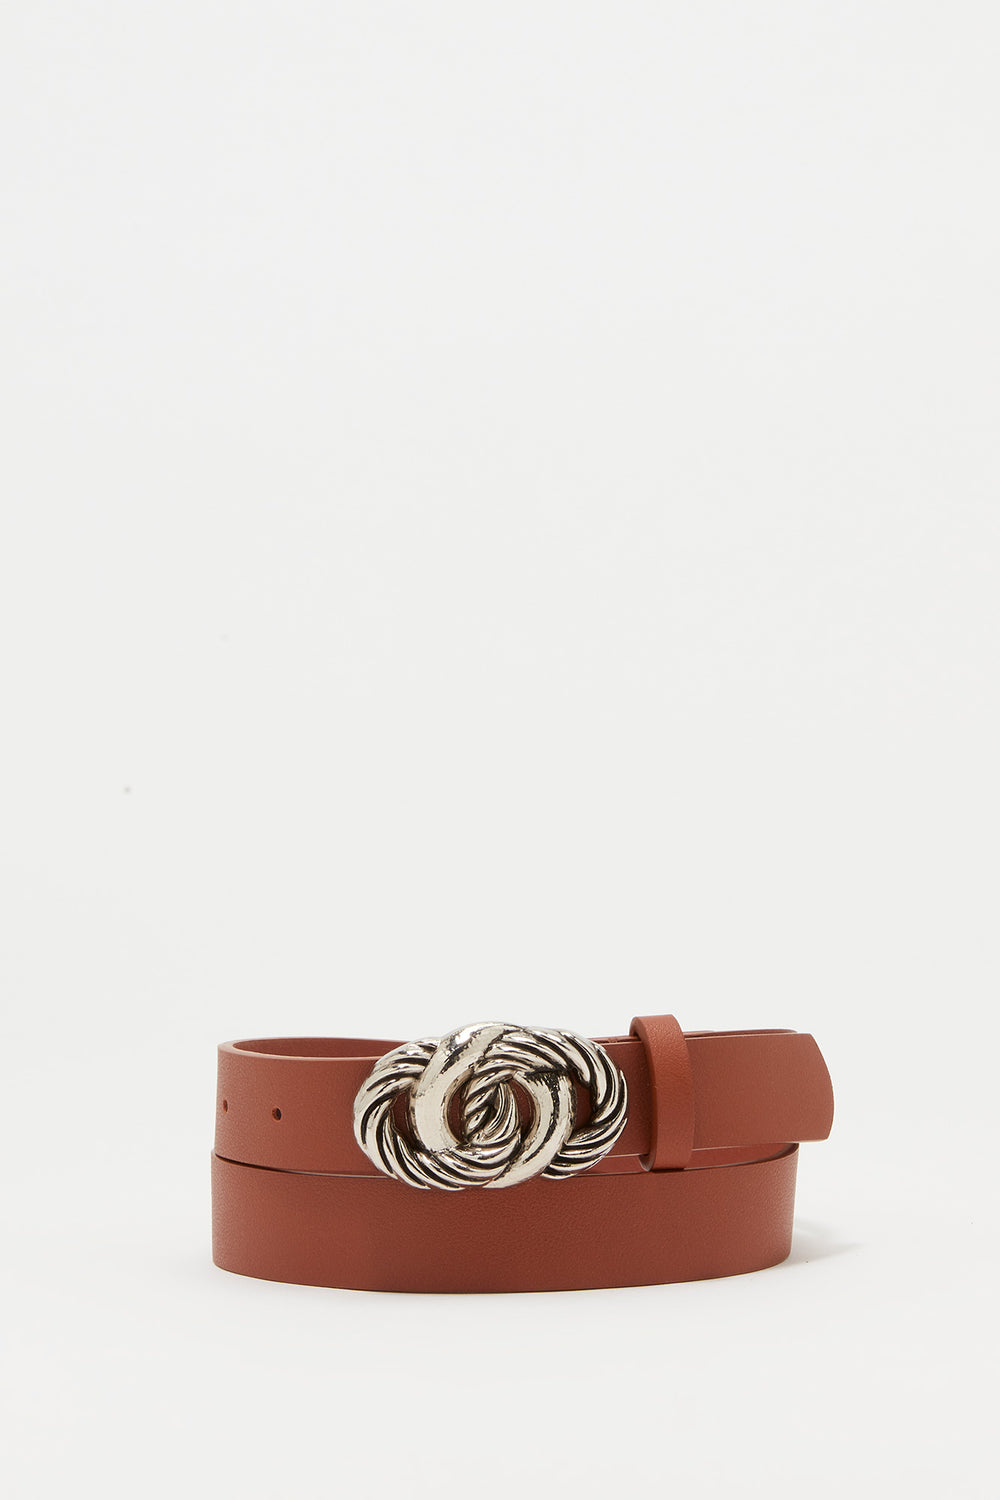 Knotted Buckle Faux-Leather Belt Camel